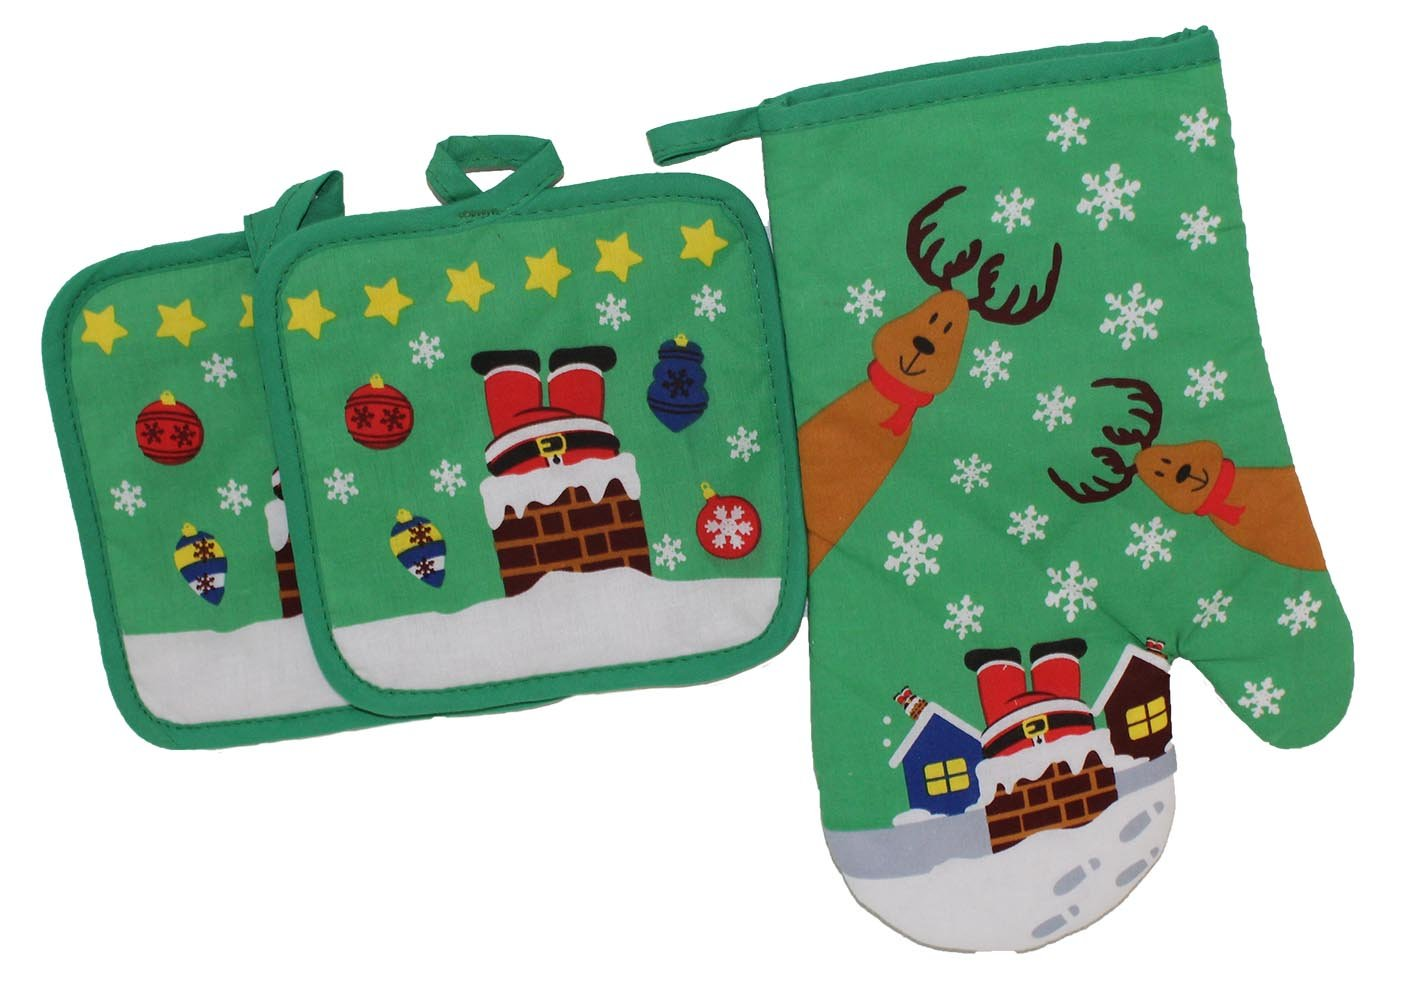 Blue Star Clothing 3 Piece Set Christmas Holiday Printed Kitchen Quilted 100% Cotton Oven Mitt & 2 Pot Holders | Heat/Flame Resistant Mitten Glove